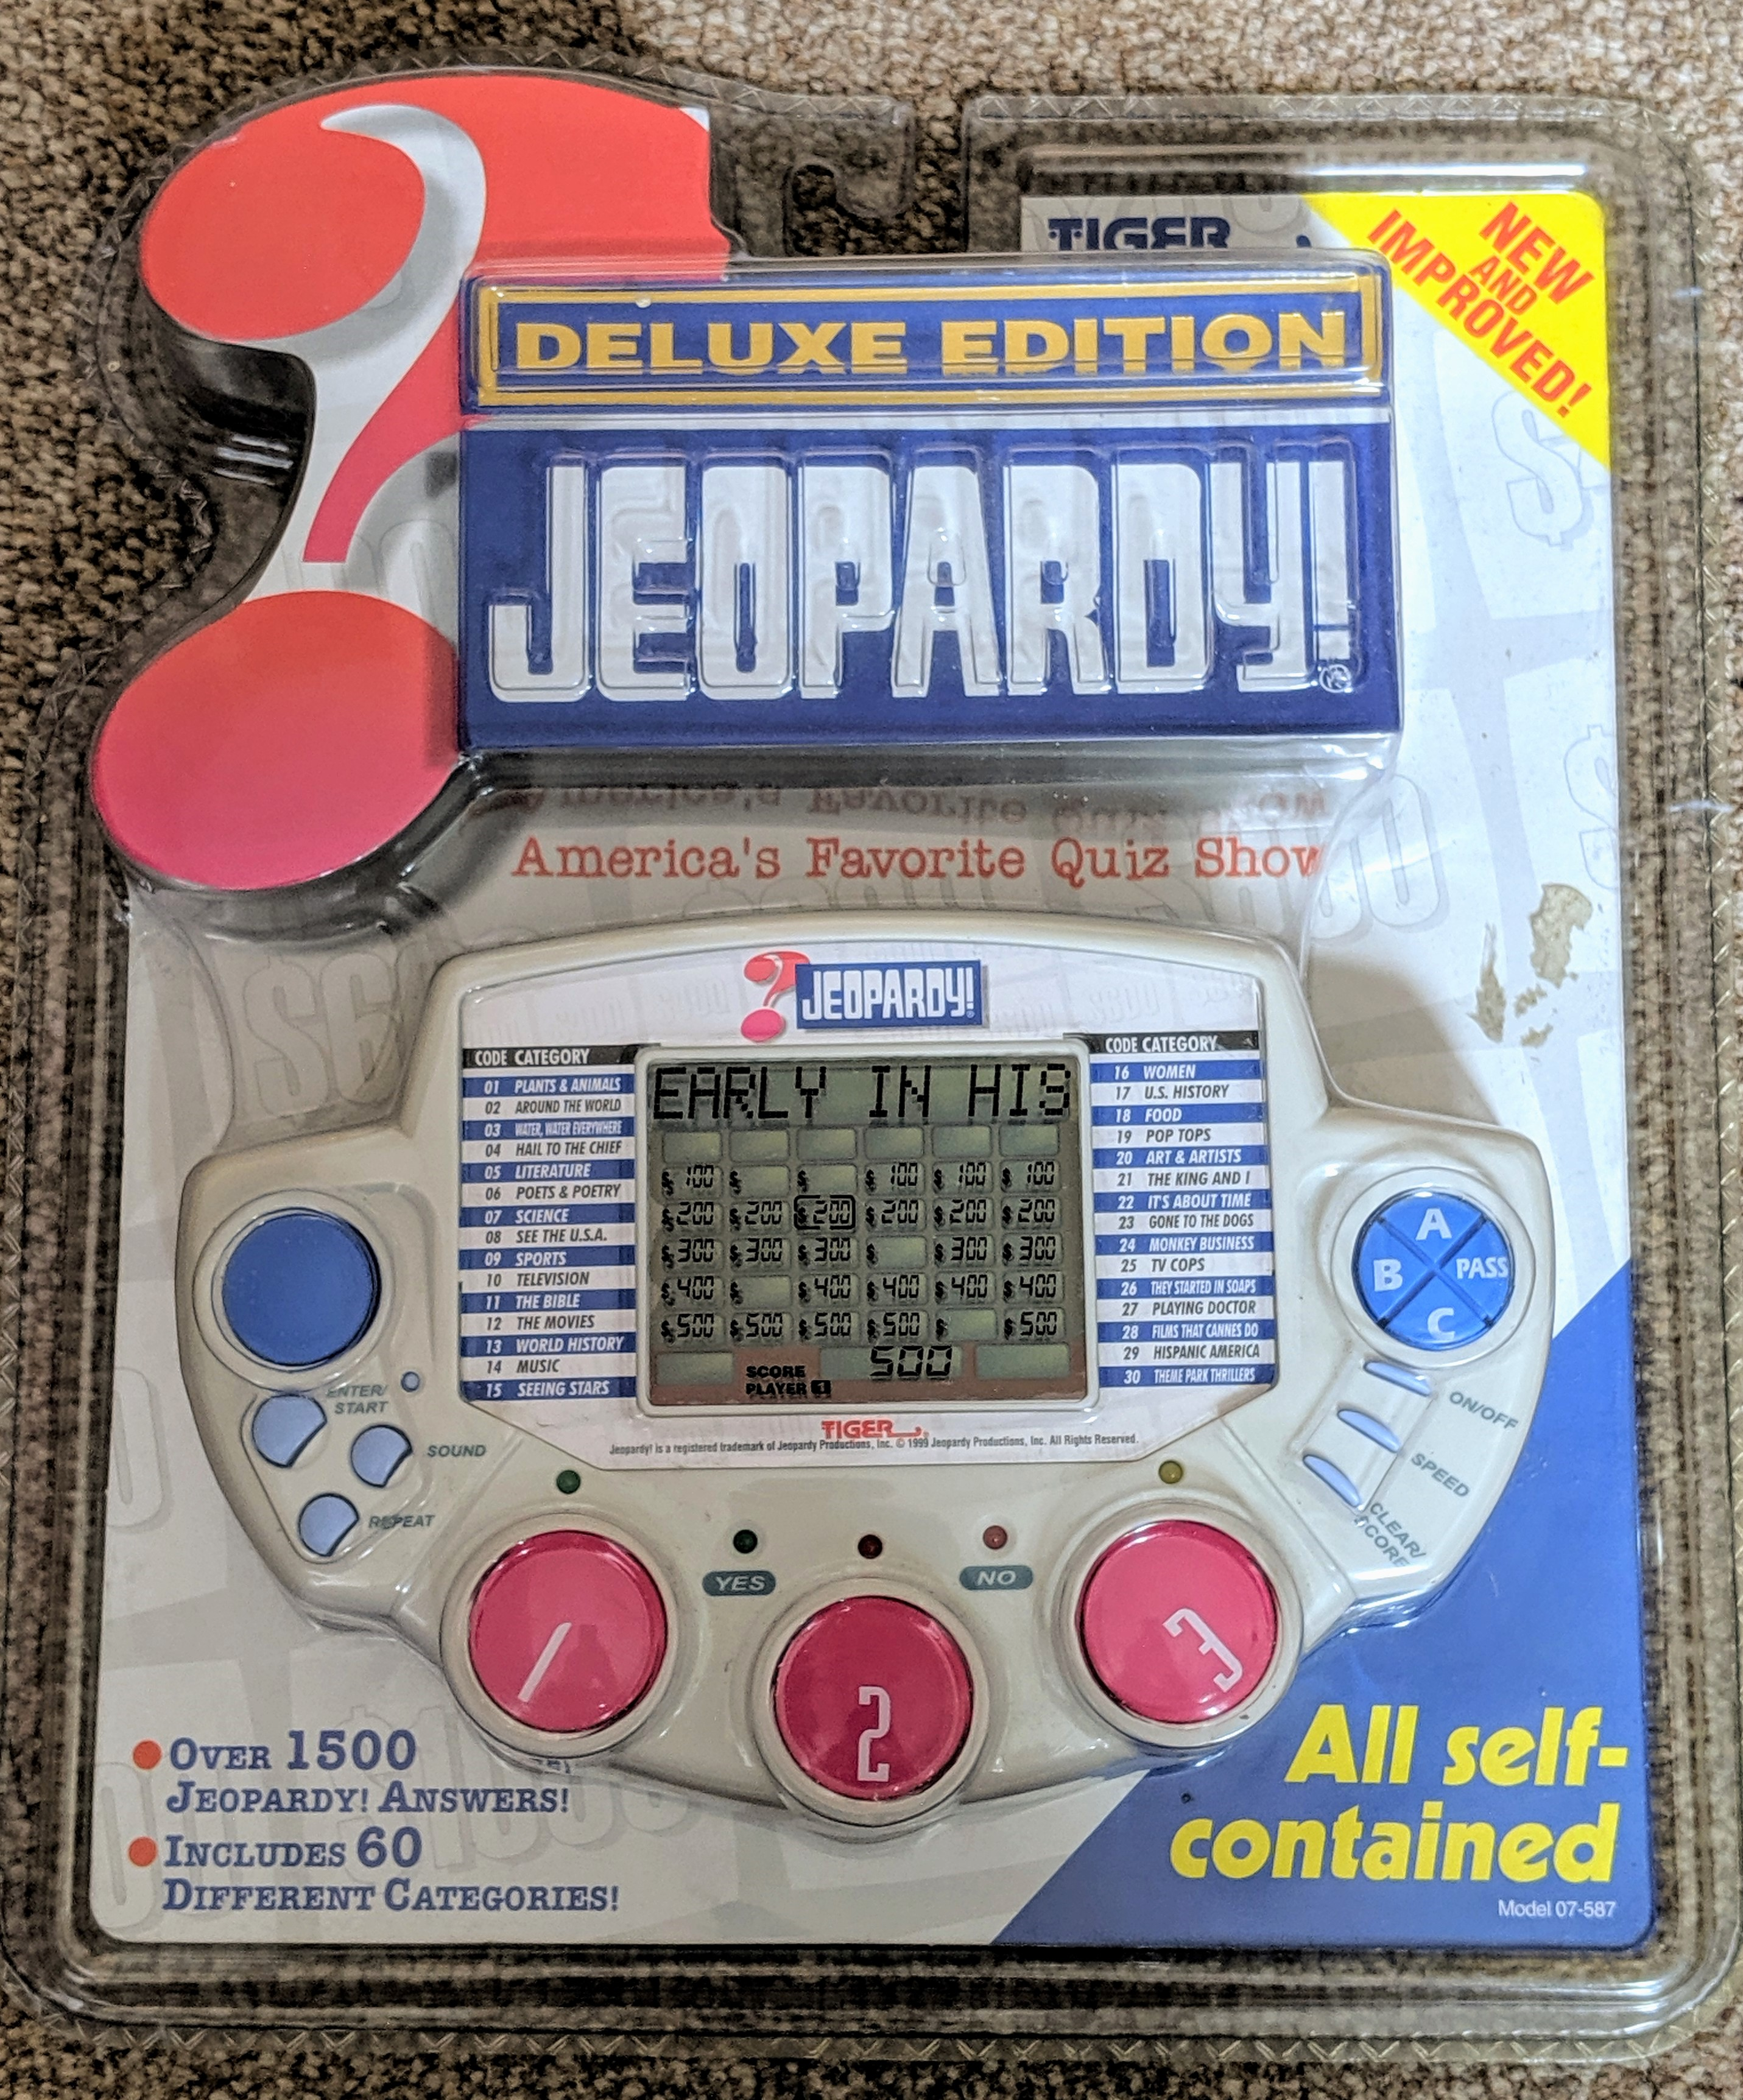 Deluxe Edition Jeopardy Game